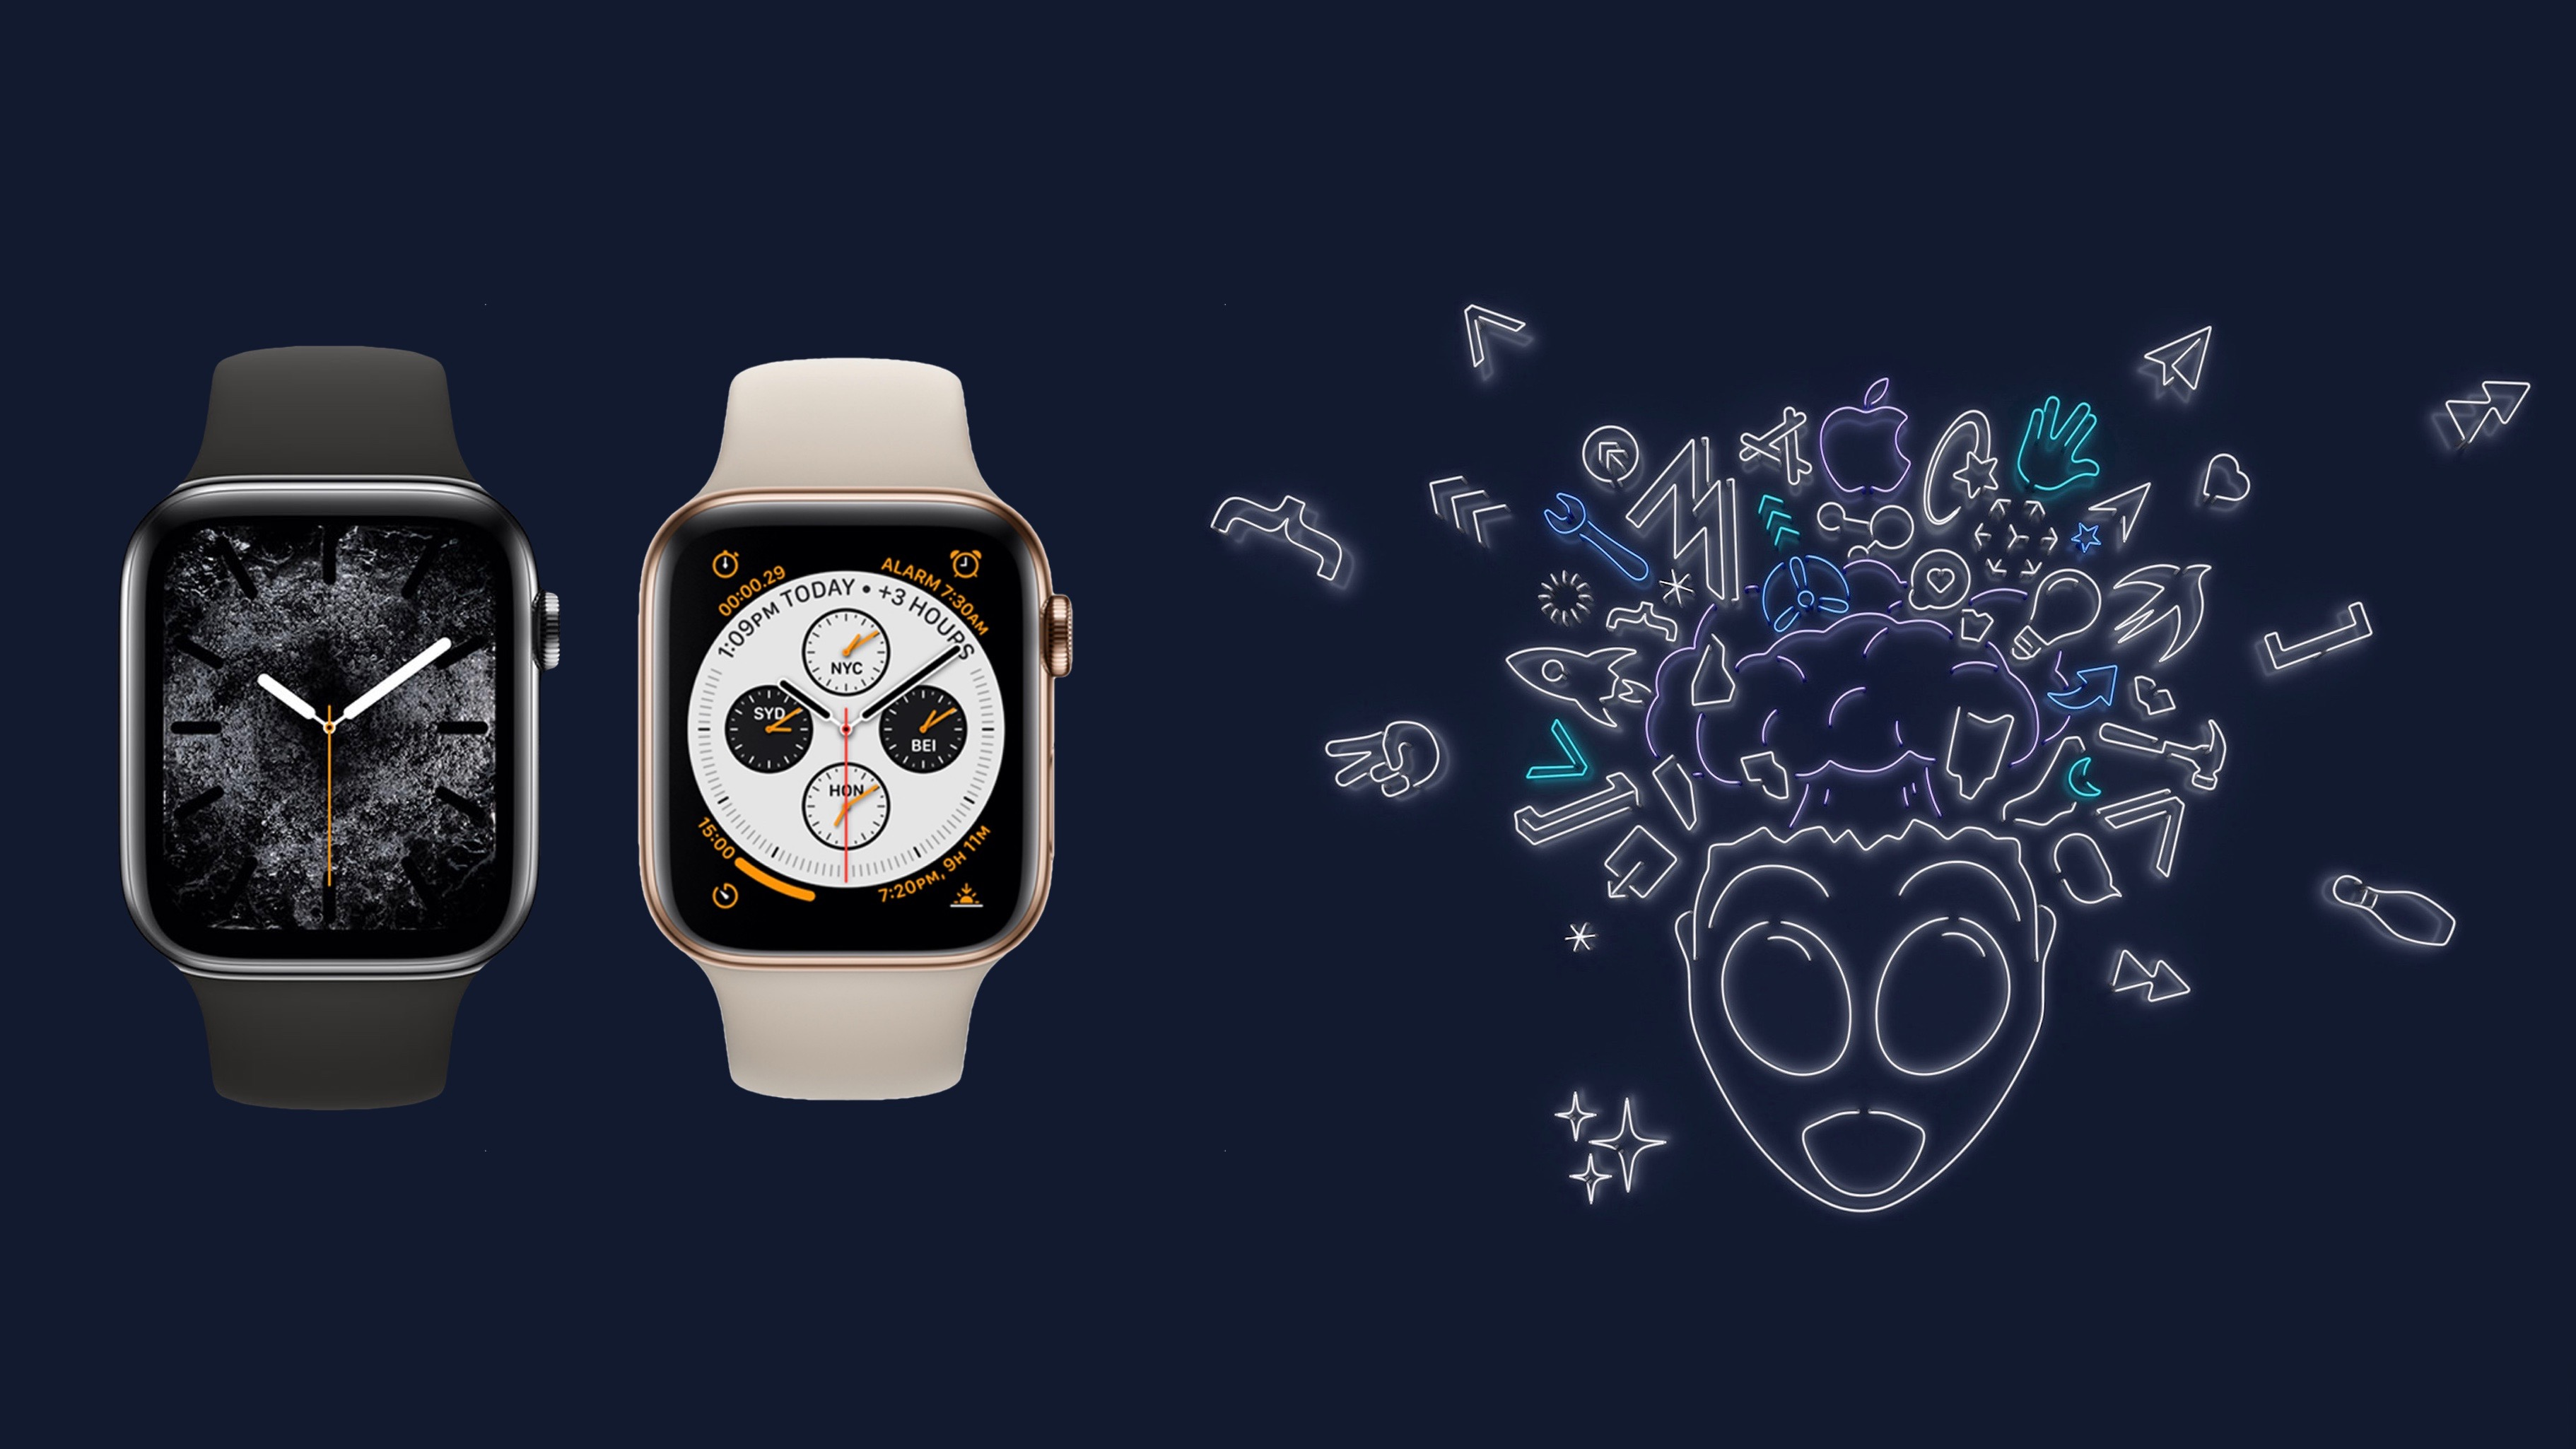 What to expect from watchOS 6: New watch faces and apps, deeper macOS integration, more